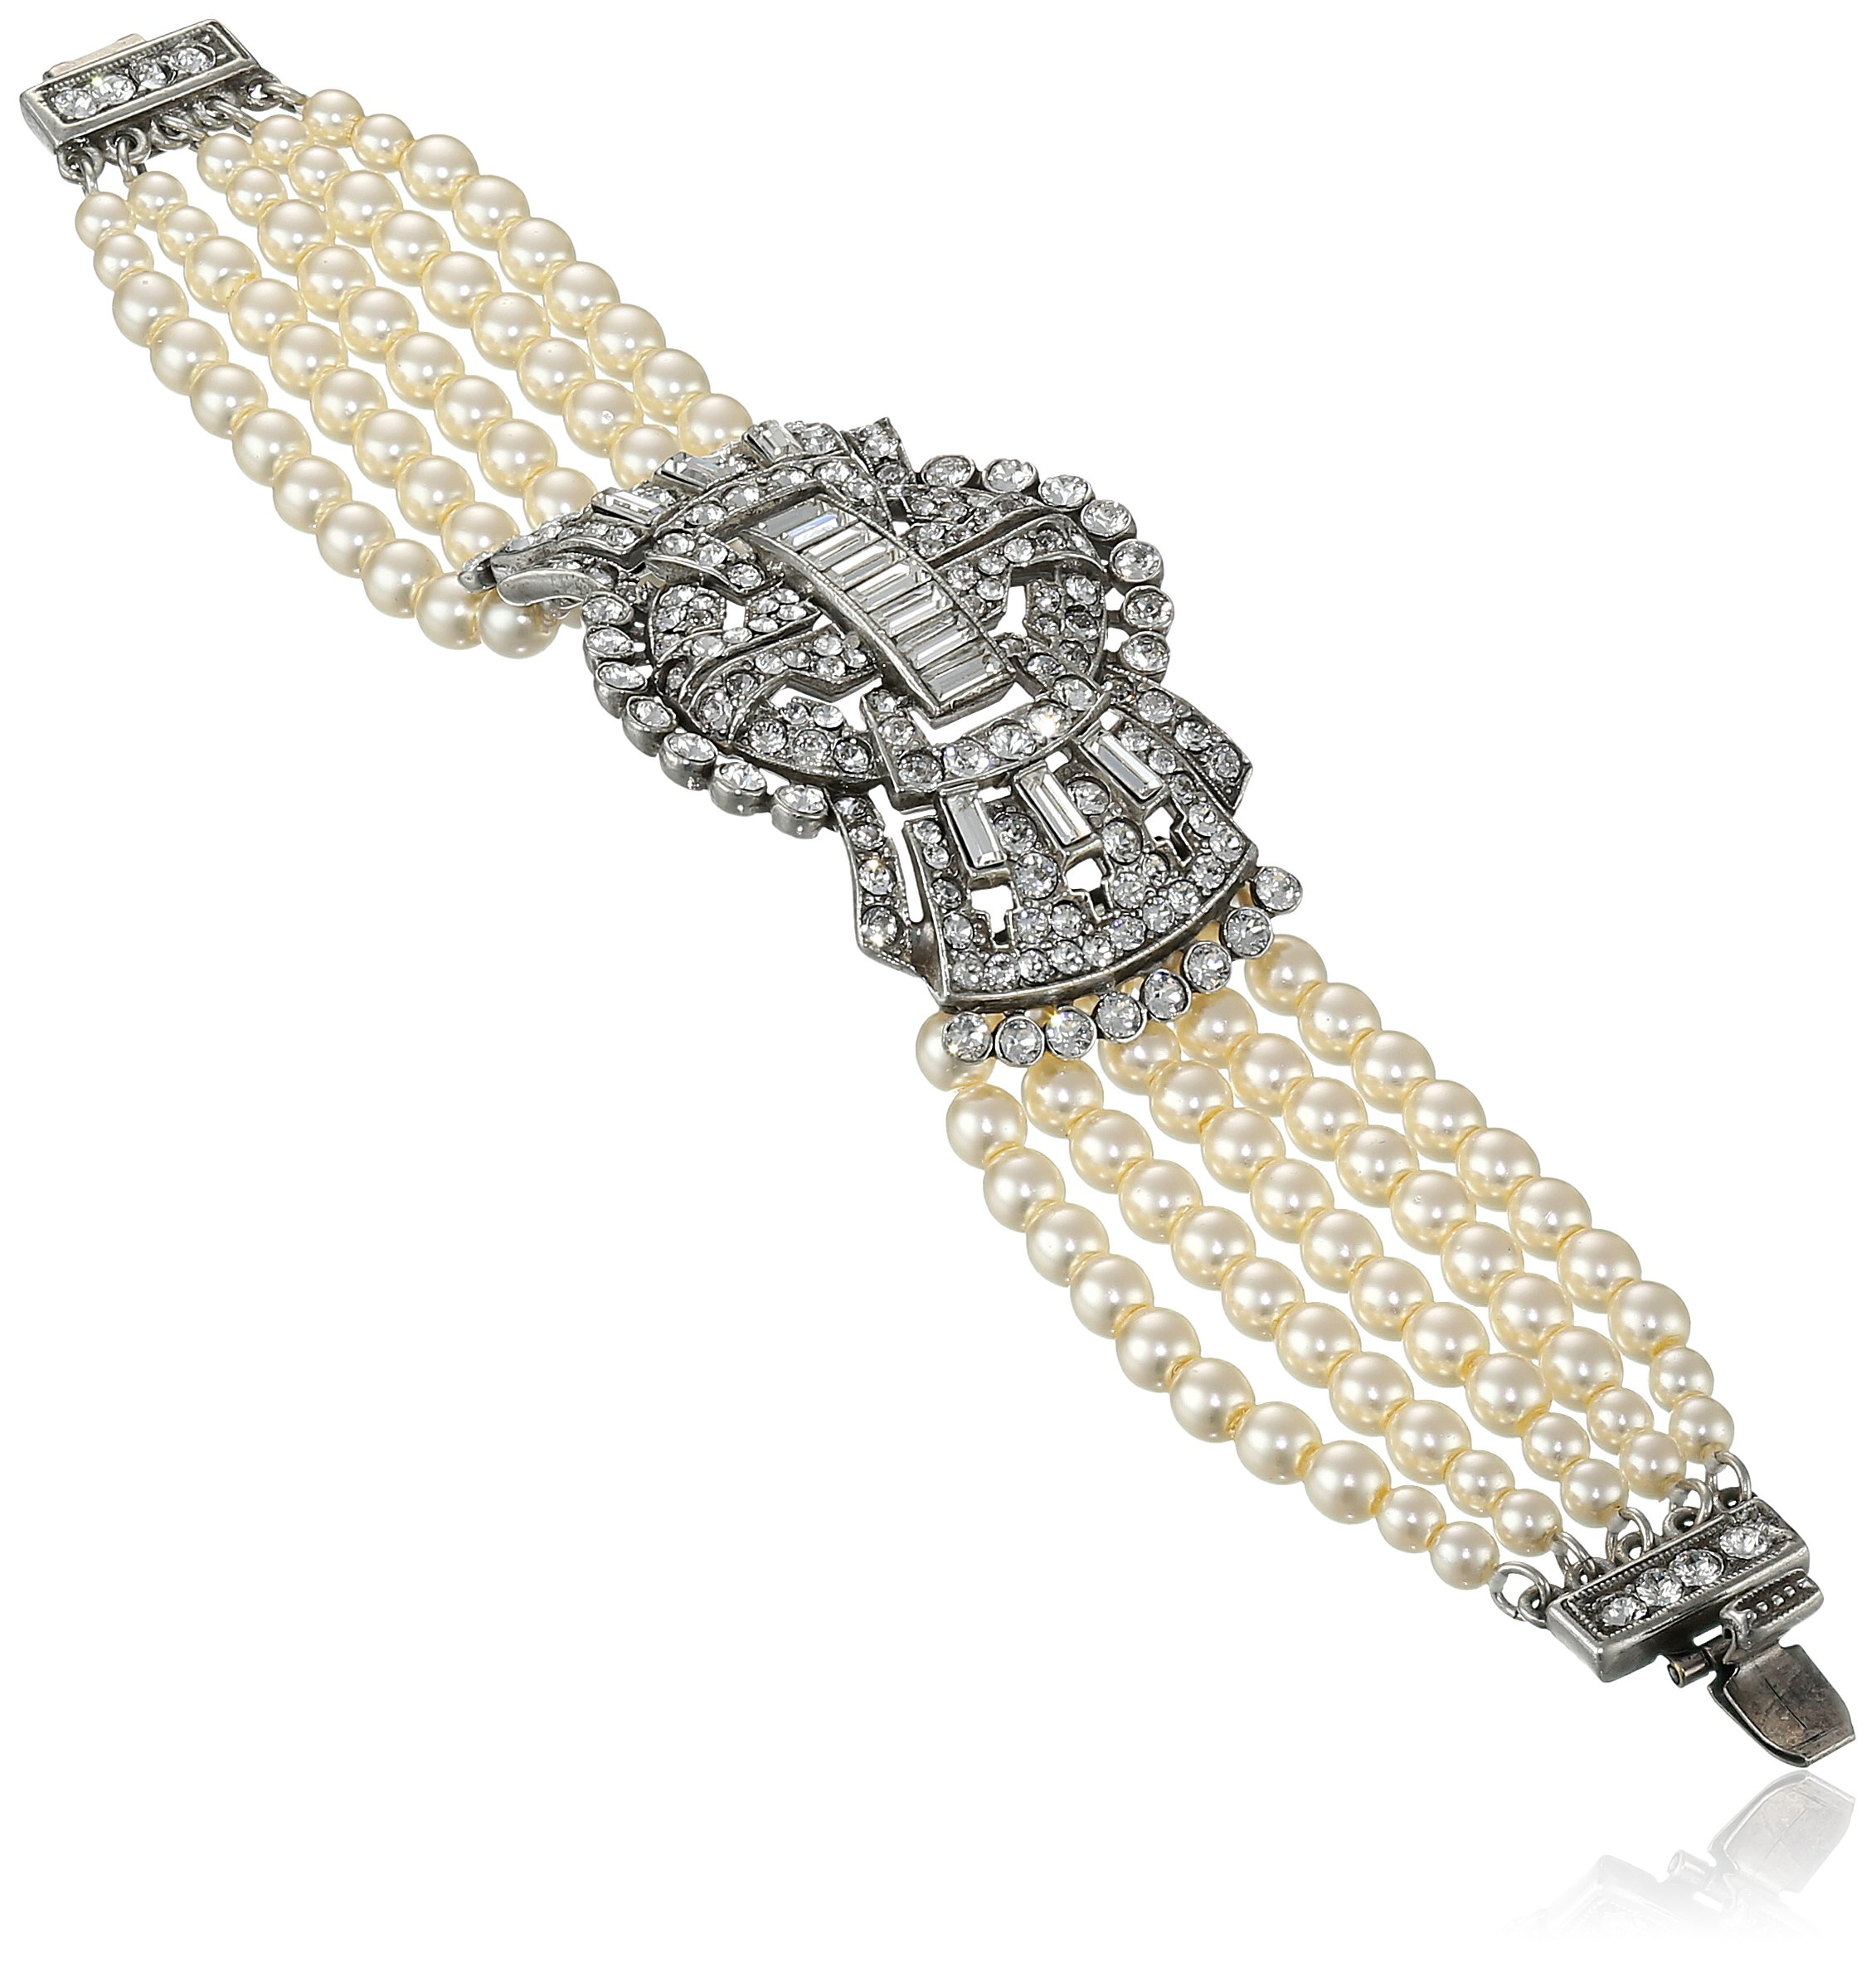 Ben-Amun Jewelry Swarovski Crystal and Glass Pearls Deco Bracelet for Bridal Wedding Anniversary